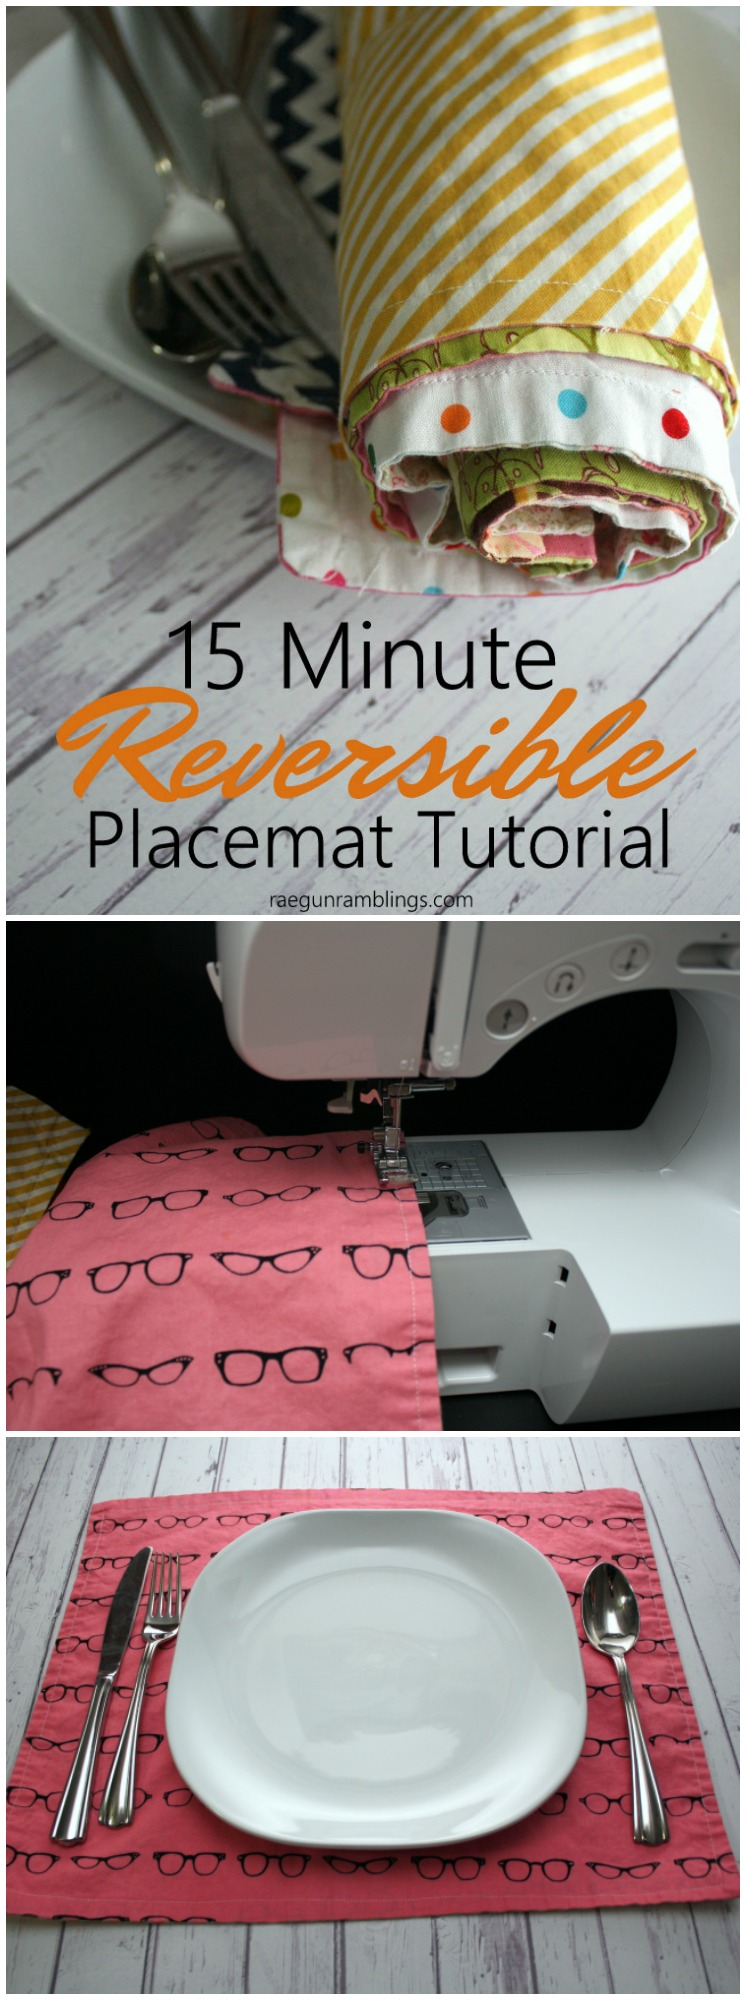 The kids sewed some of these this weekend. Great 15 minute reversible placemats sewing tutorial perfect for beginners or anyone wanting a fast project. Free pattern.